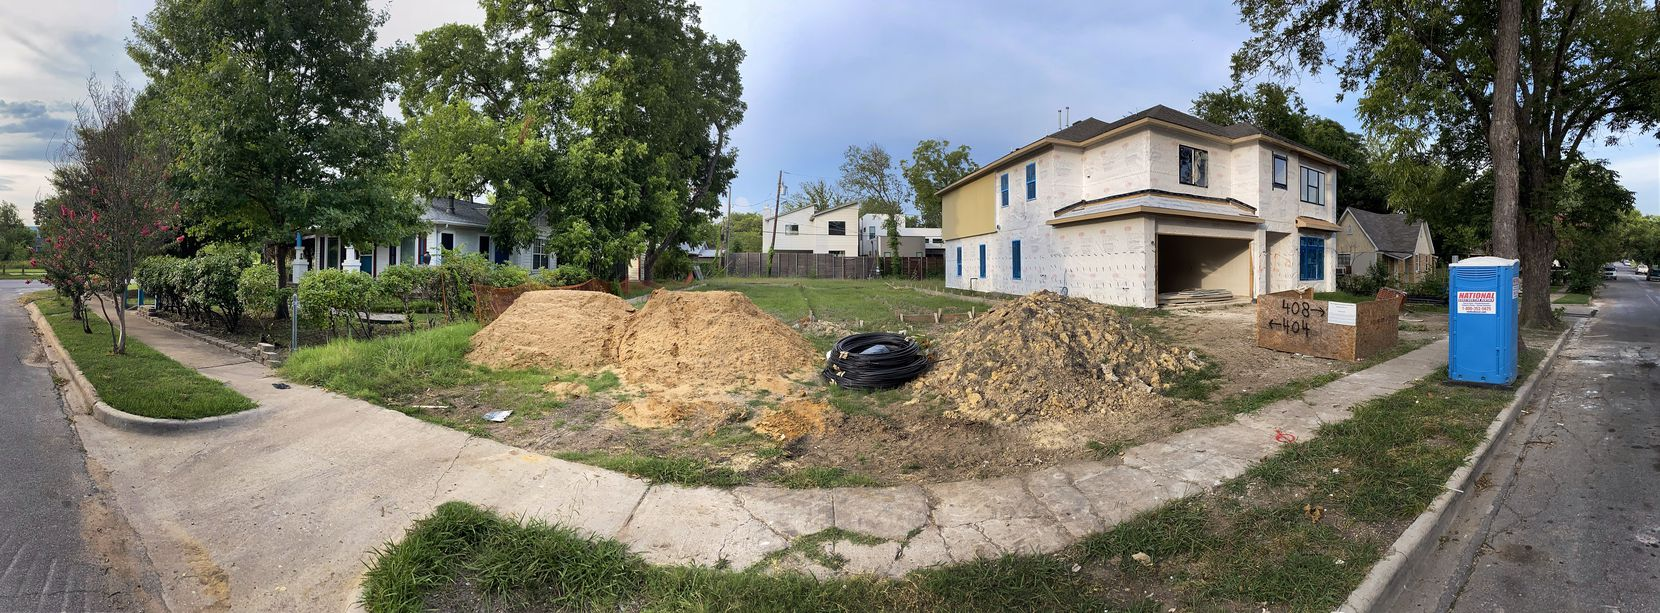 A panoramic view shows a block in which one original-construction house still stands near new construction and a razed lot set to hold another new home.